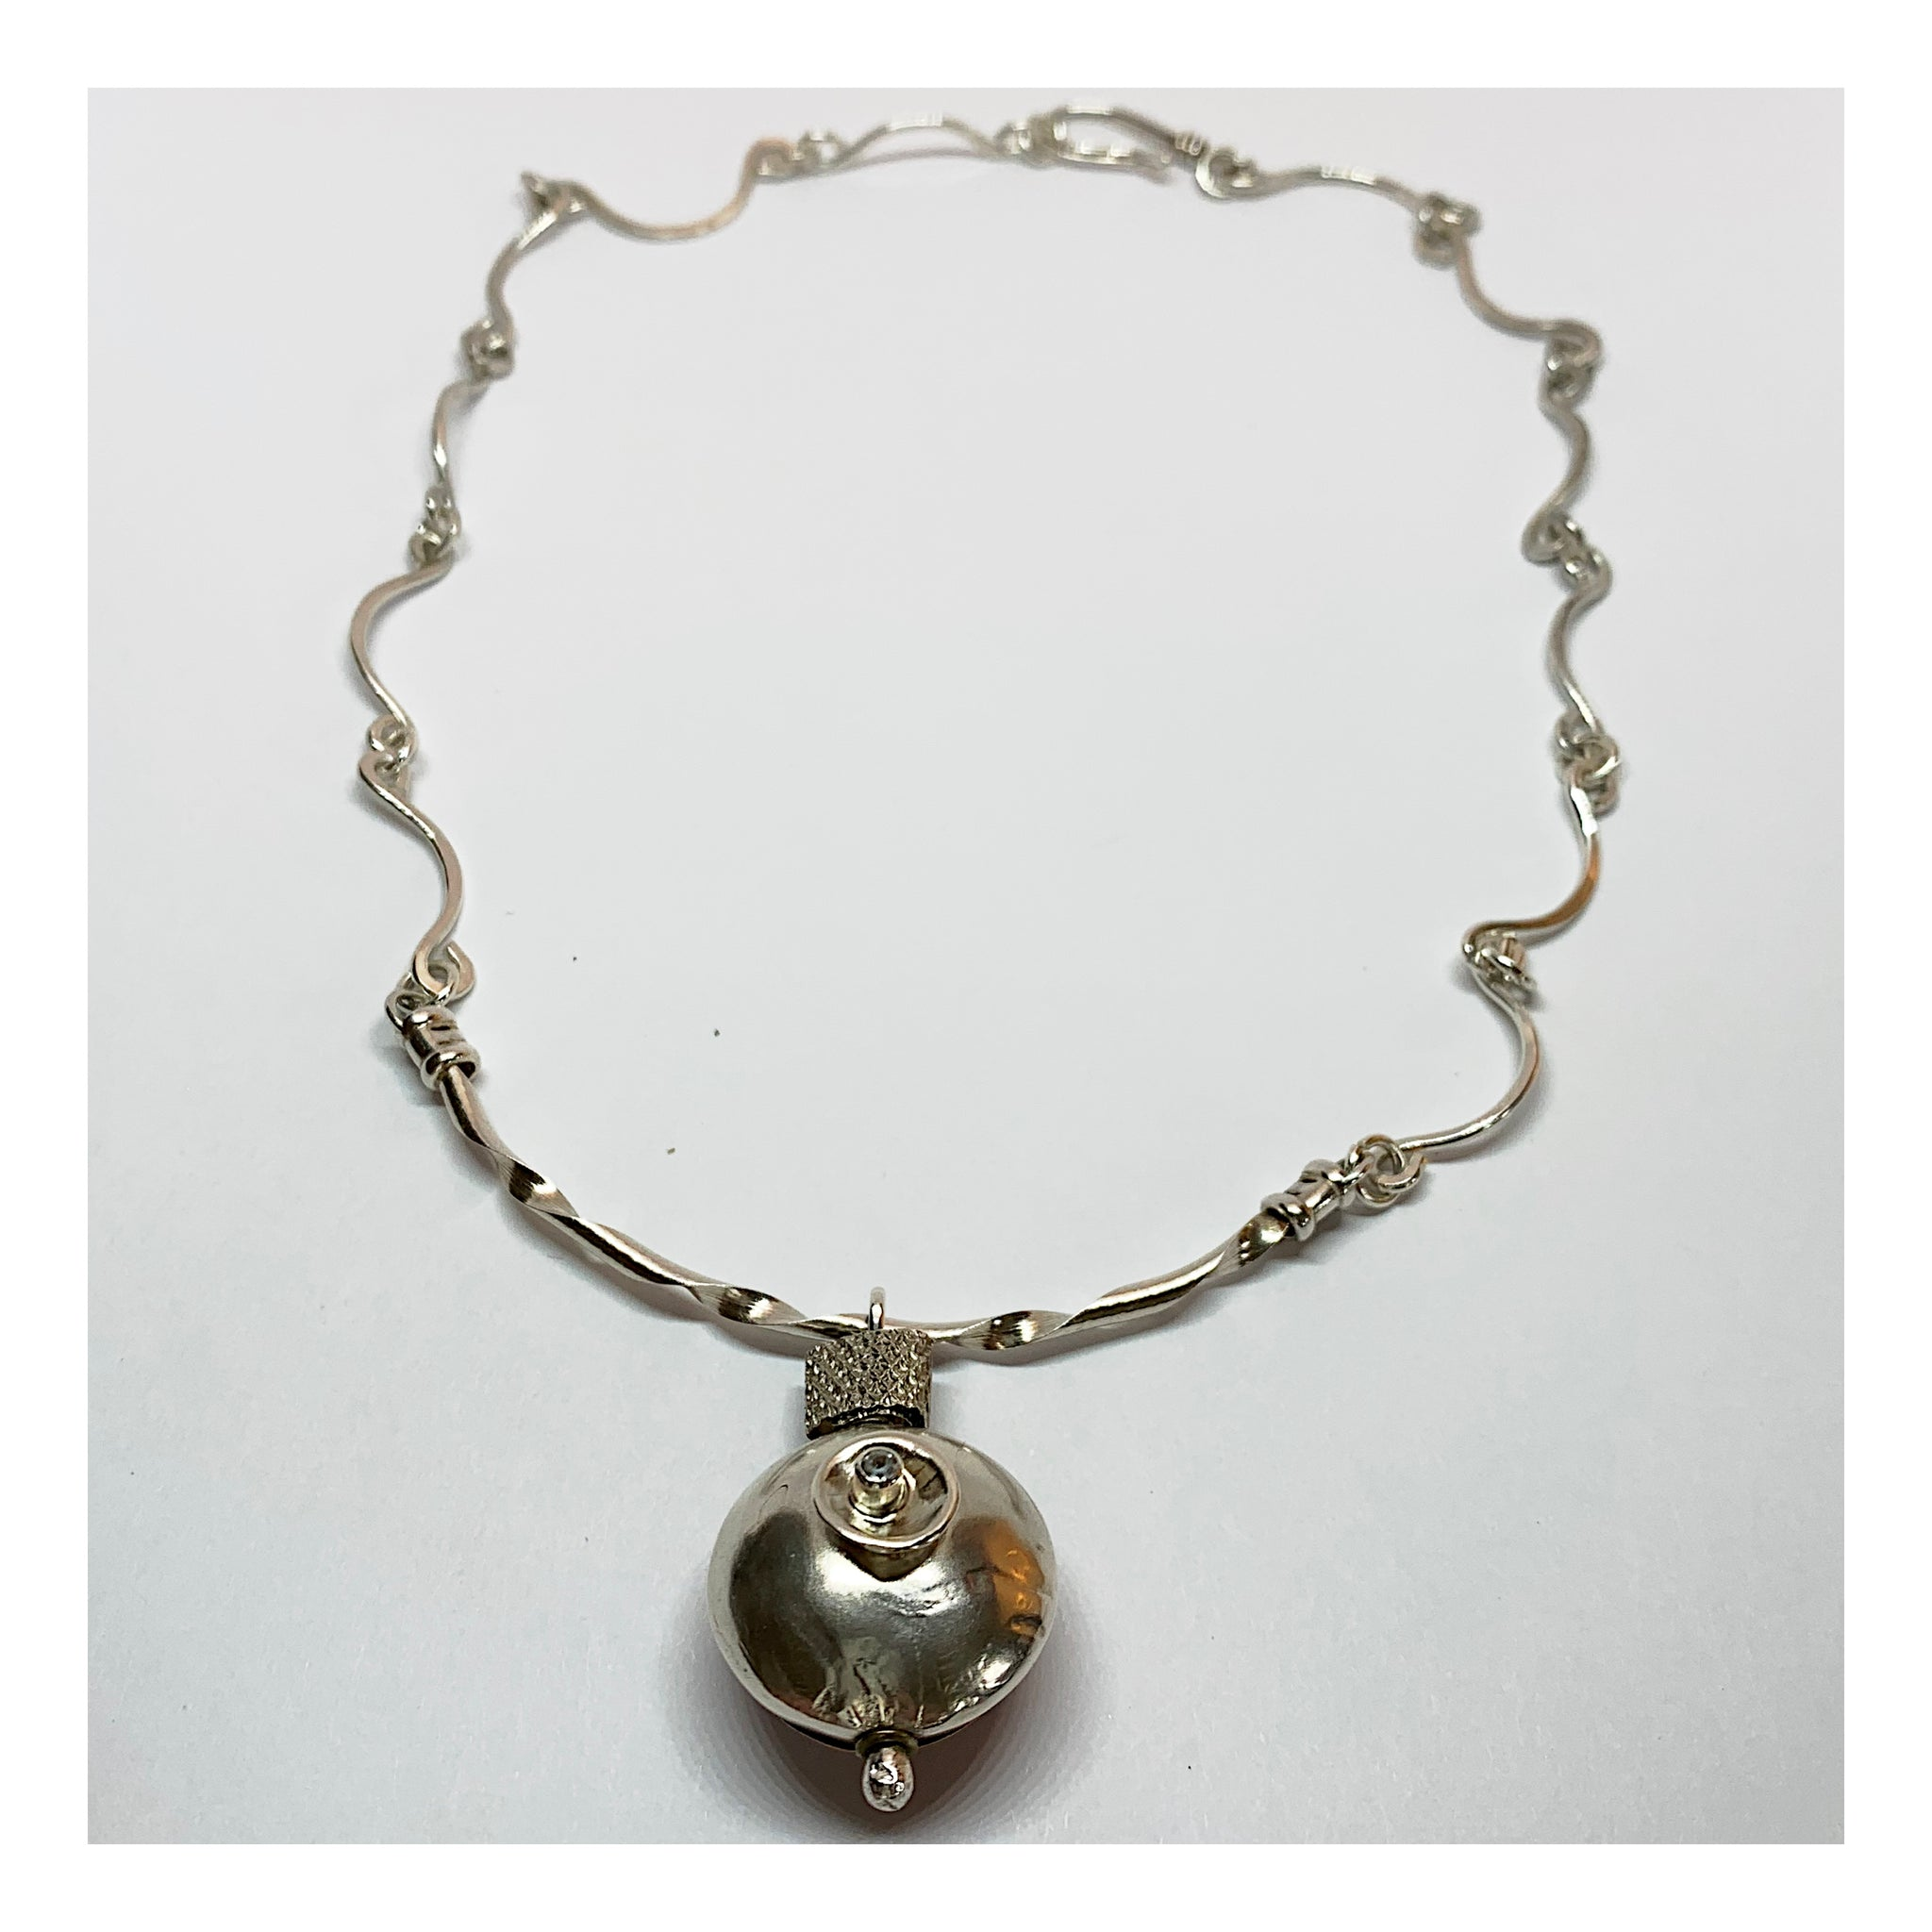 One of a Kind Sterling Silver Necklace - Unique and Unusual Handmade Jewelry